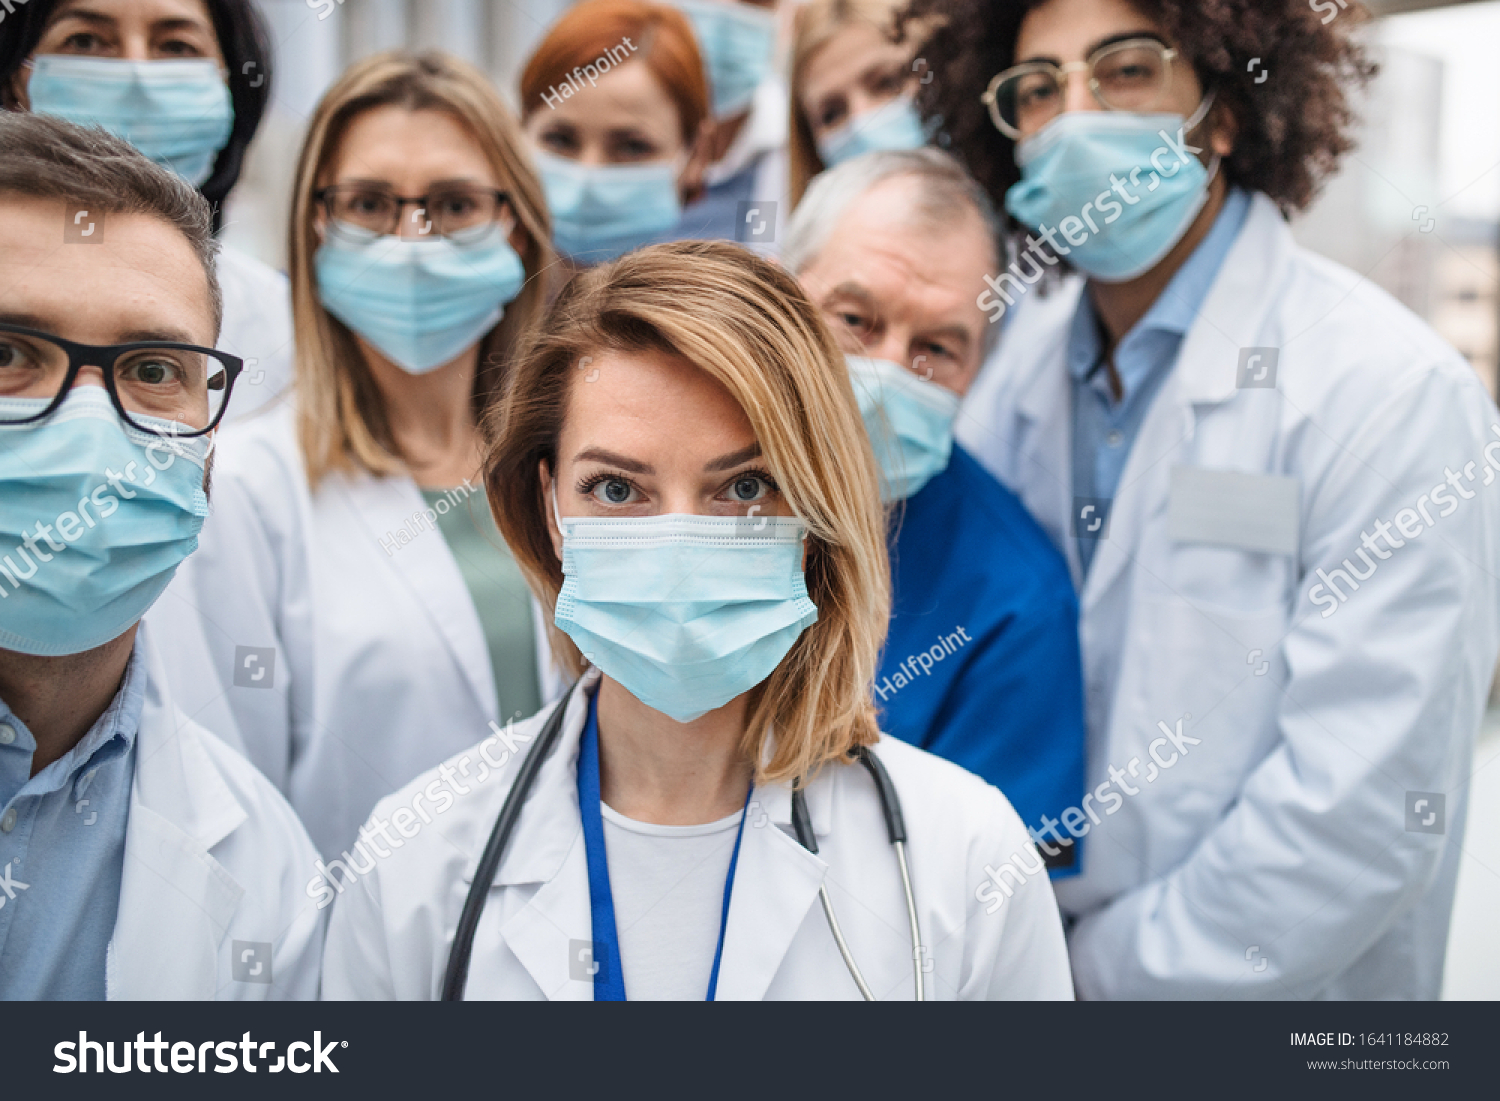 Group of doctors with face masks looking at camera, corona virus concept. #1641184882